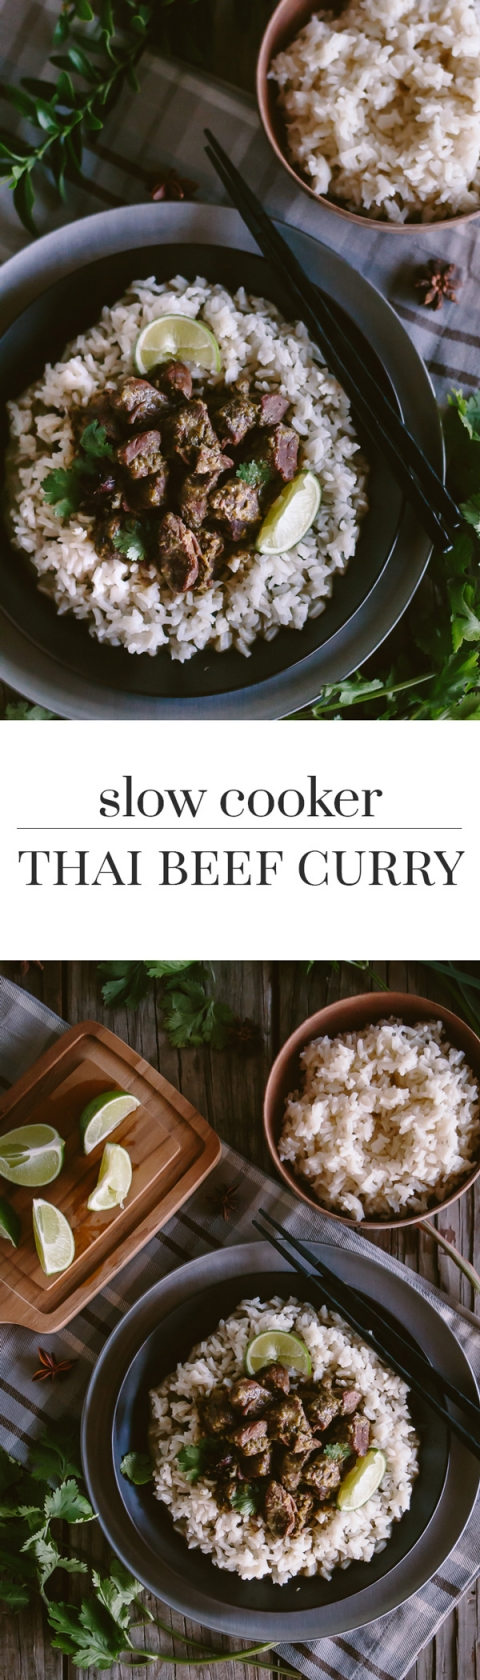 Slow Cooker Thai Beef Curry Recipe: Beef flavored with lemon grass curry and slow cooked in a crockpot.